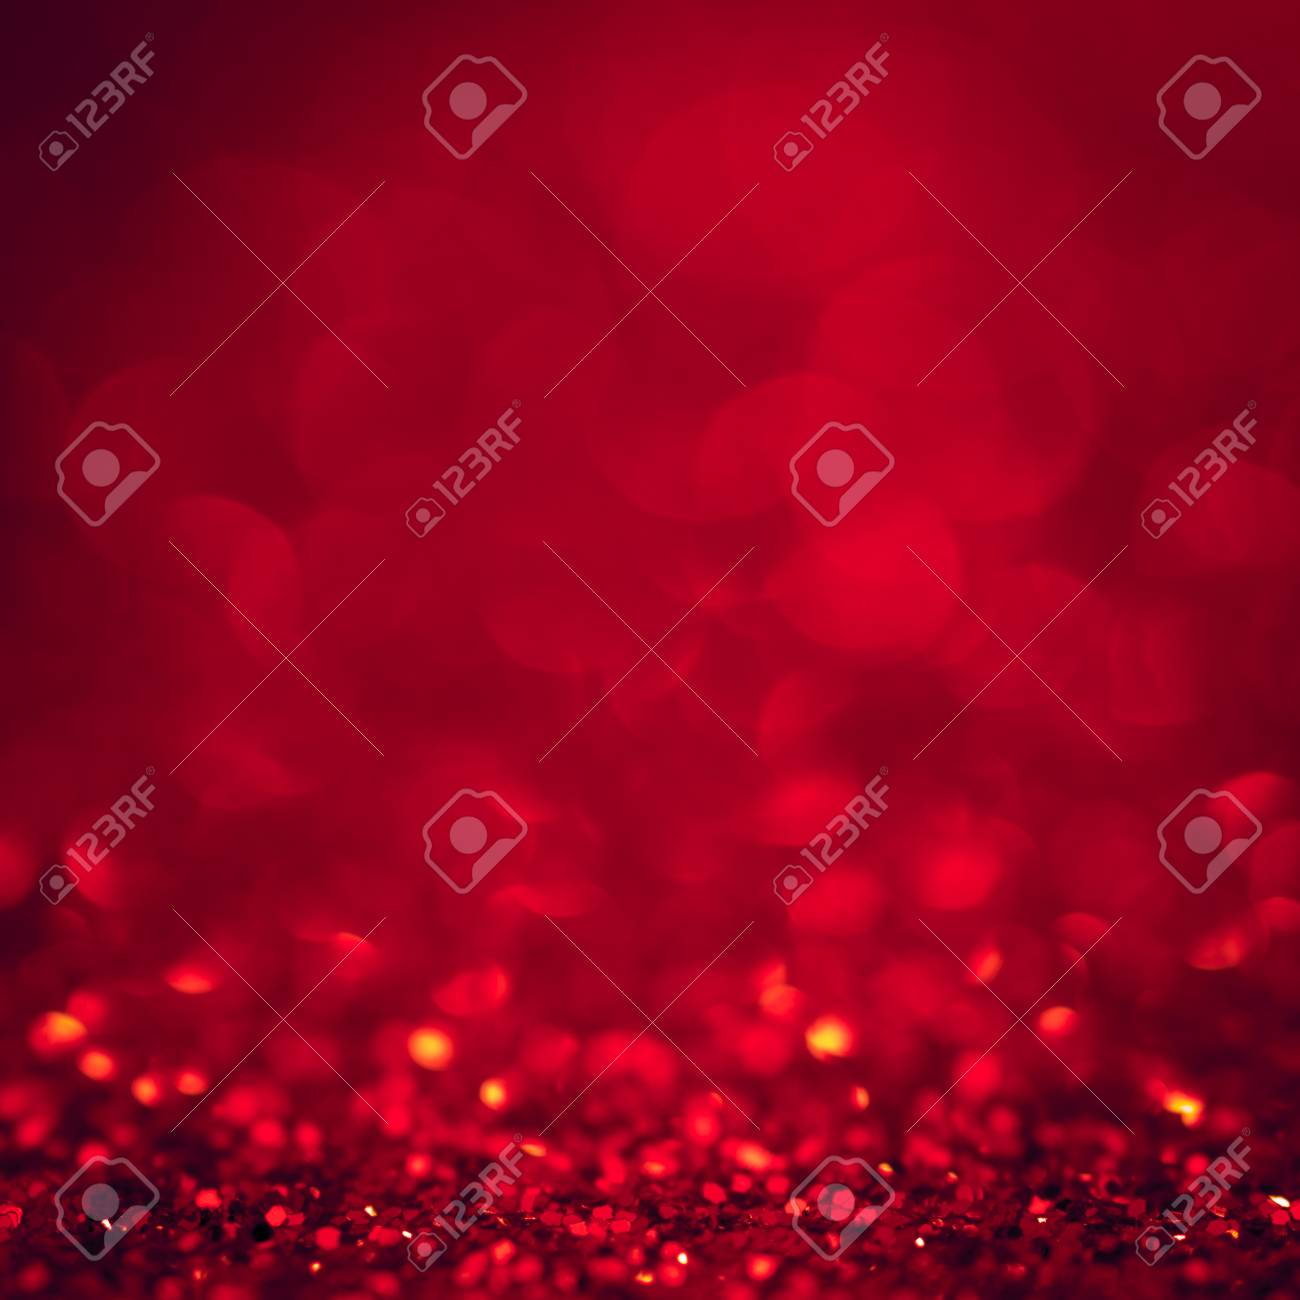 Background Red Christmas Light Glitter Abstract Xmas With Bokeh